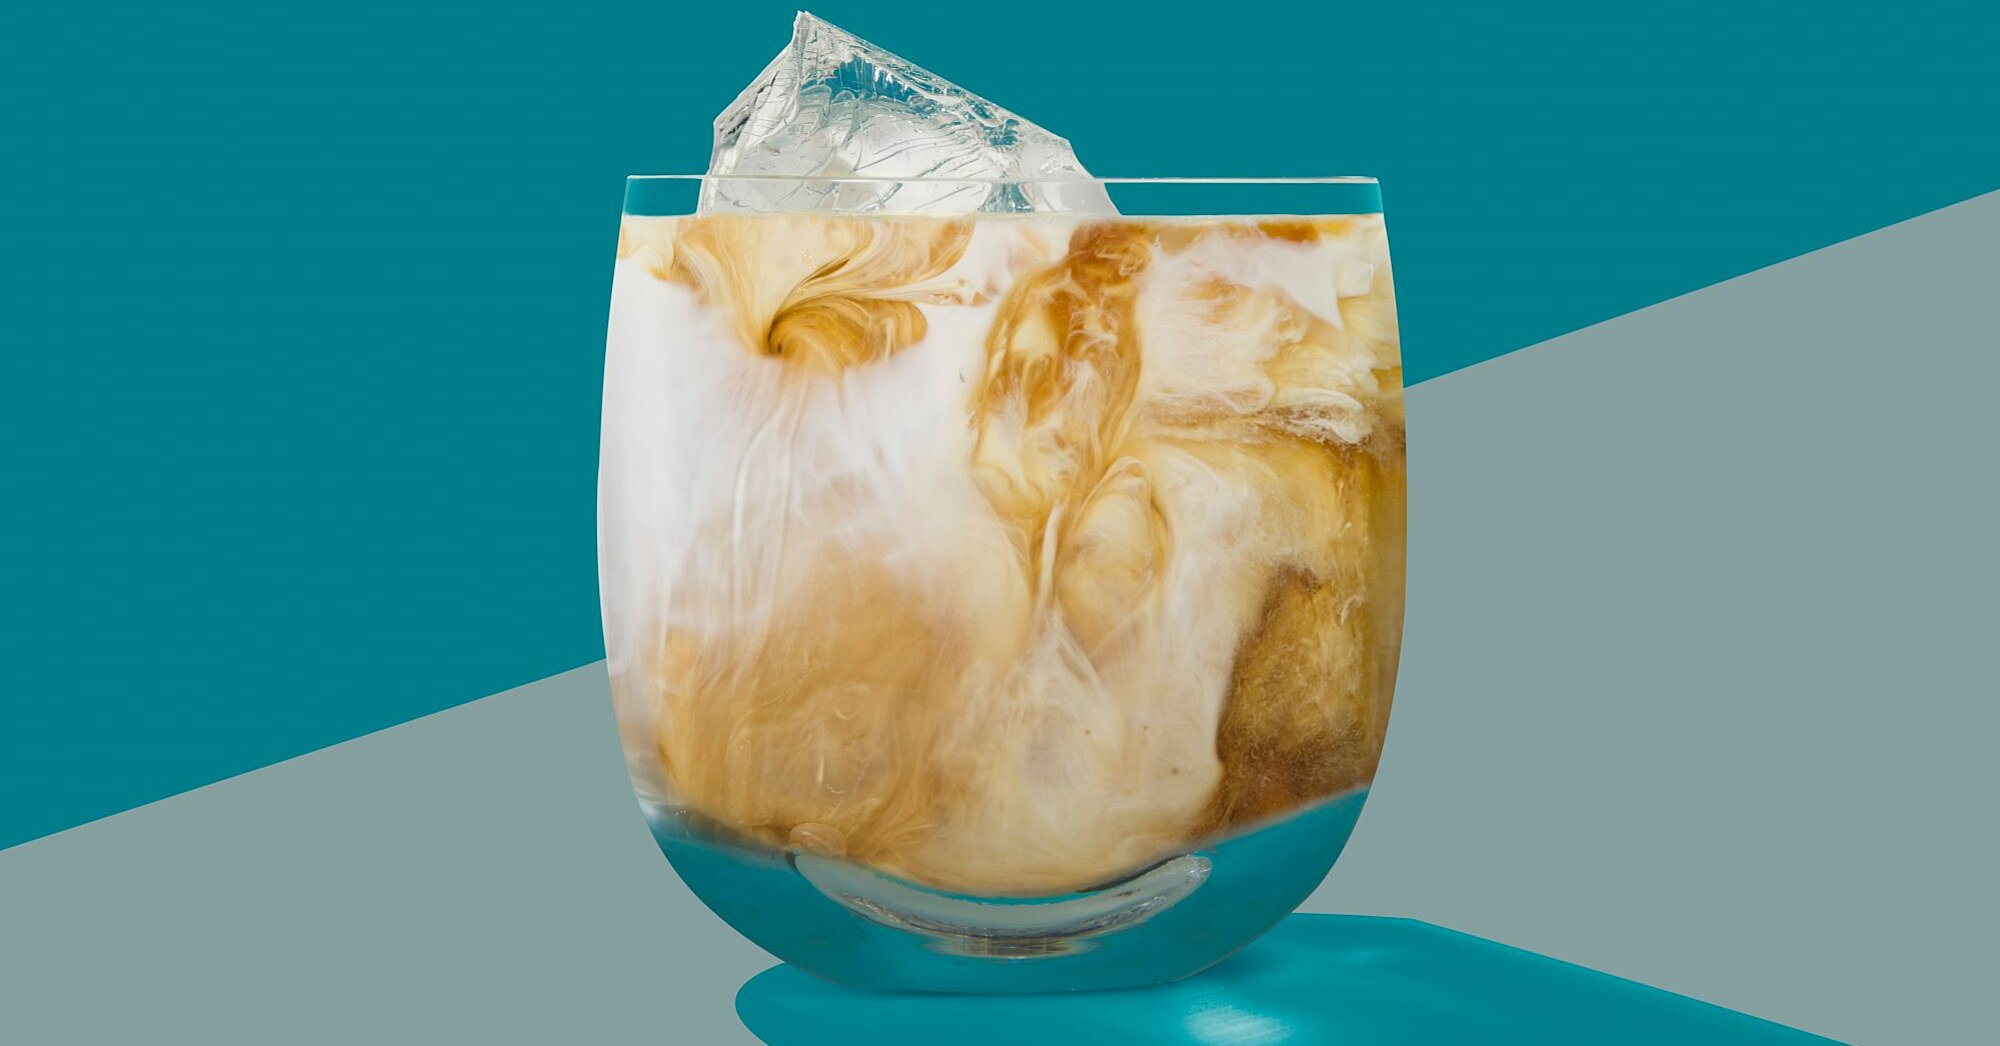 How to Make a White Russian, the Deliciously Decadent Cocktail That Only Requires 3 Ingredients